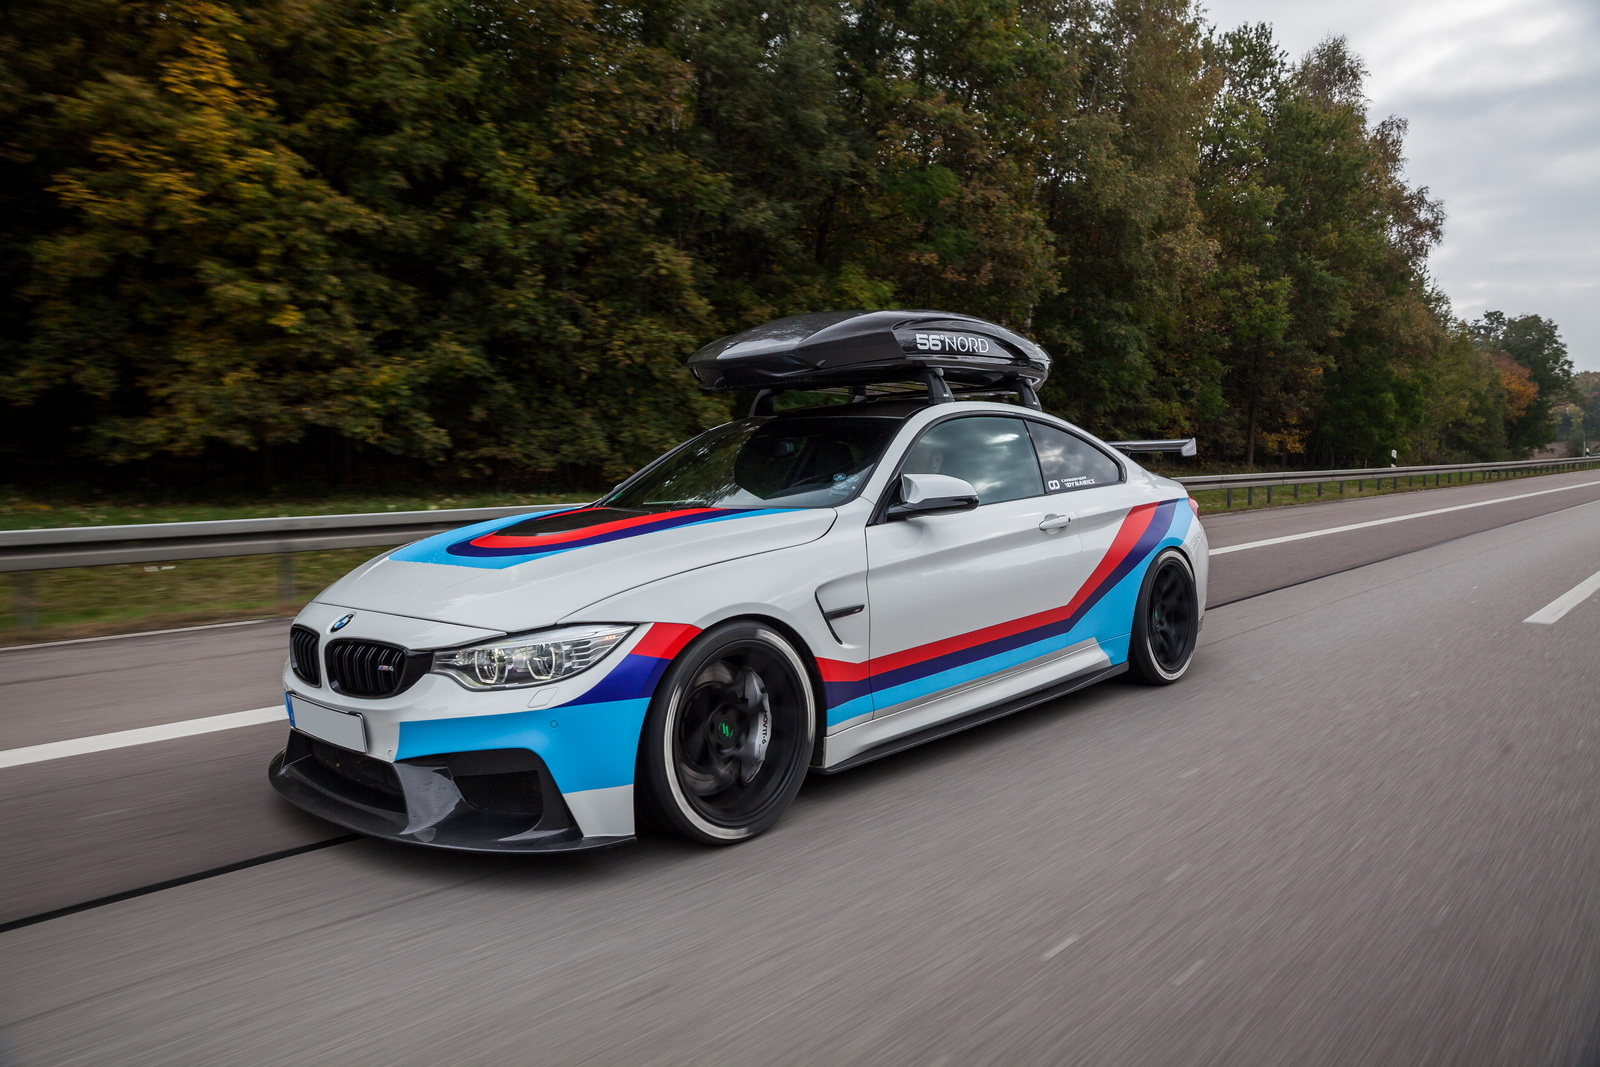 bmw-m4r-by-carbonfiber-dynamic-39